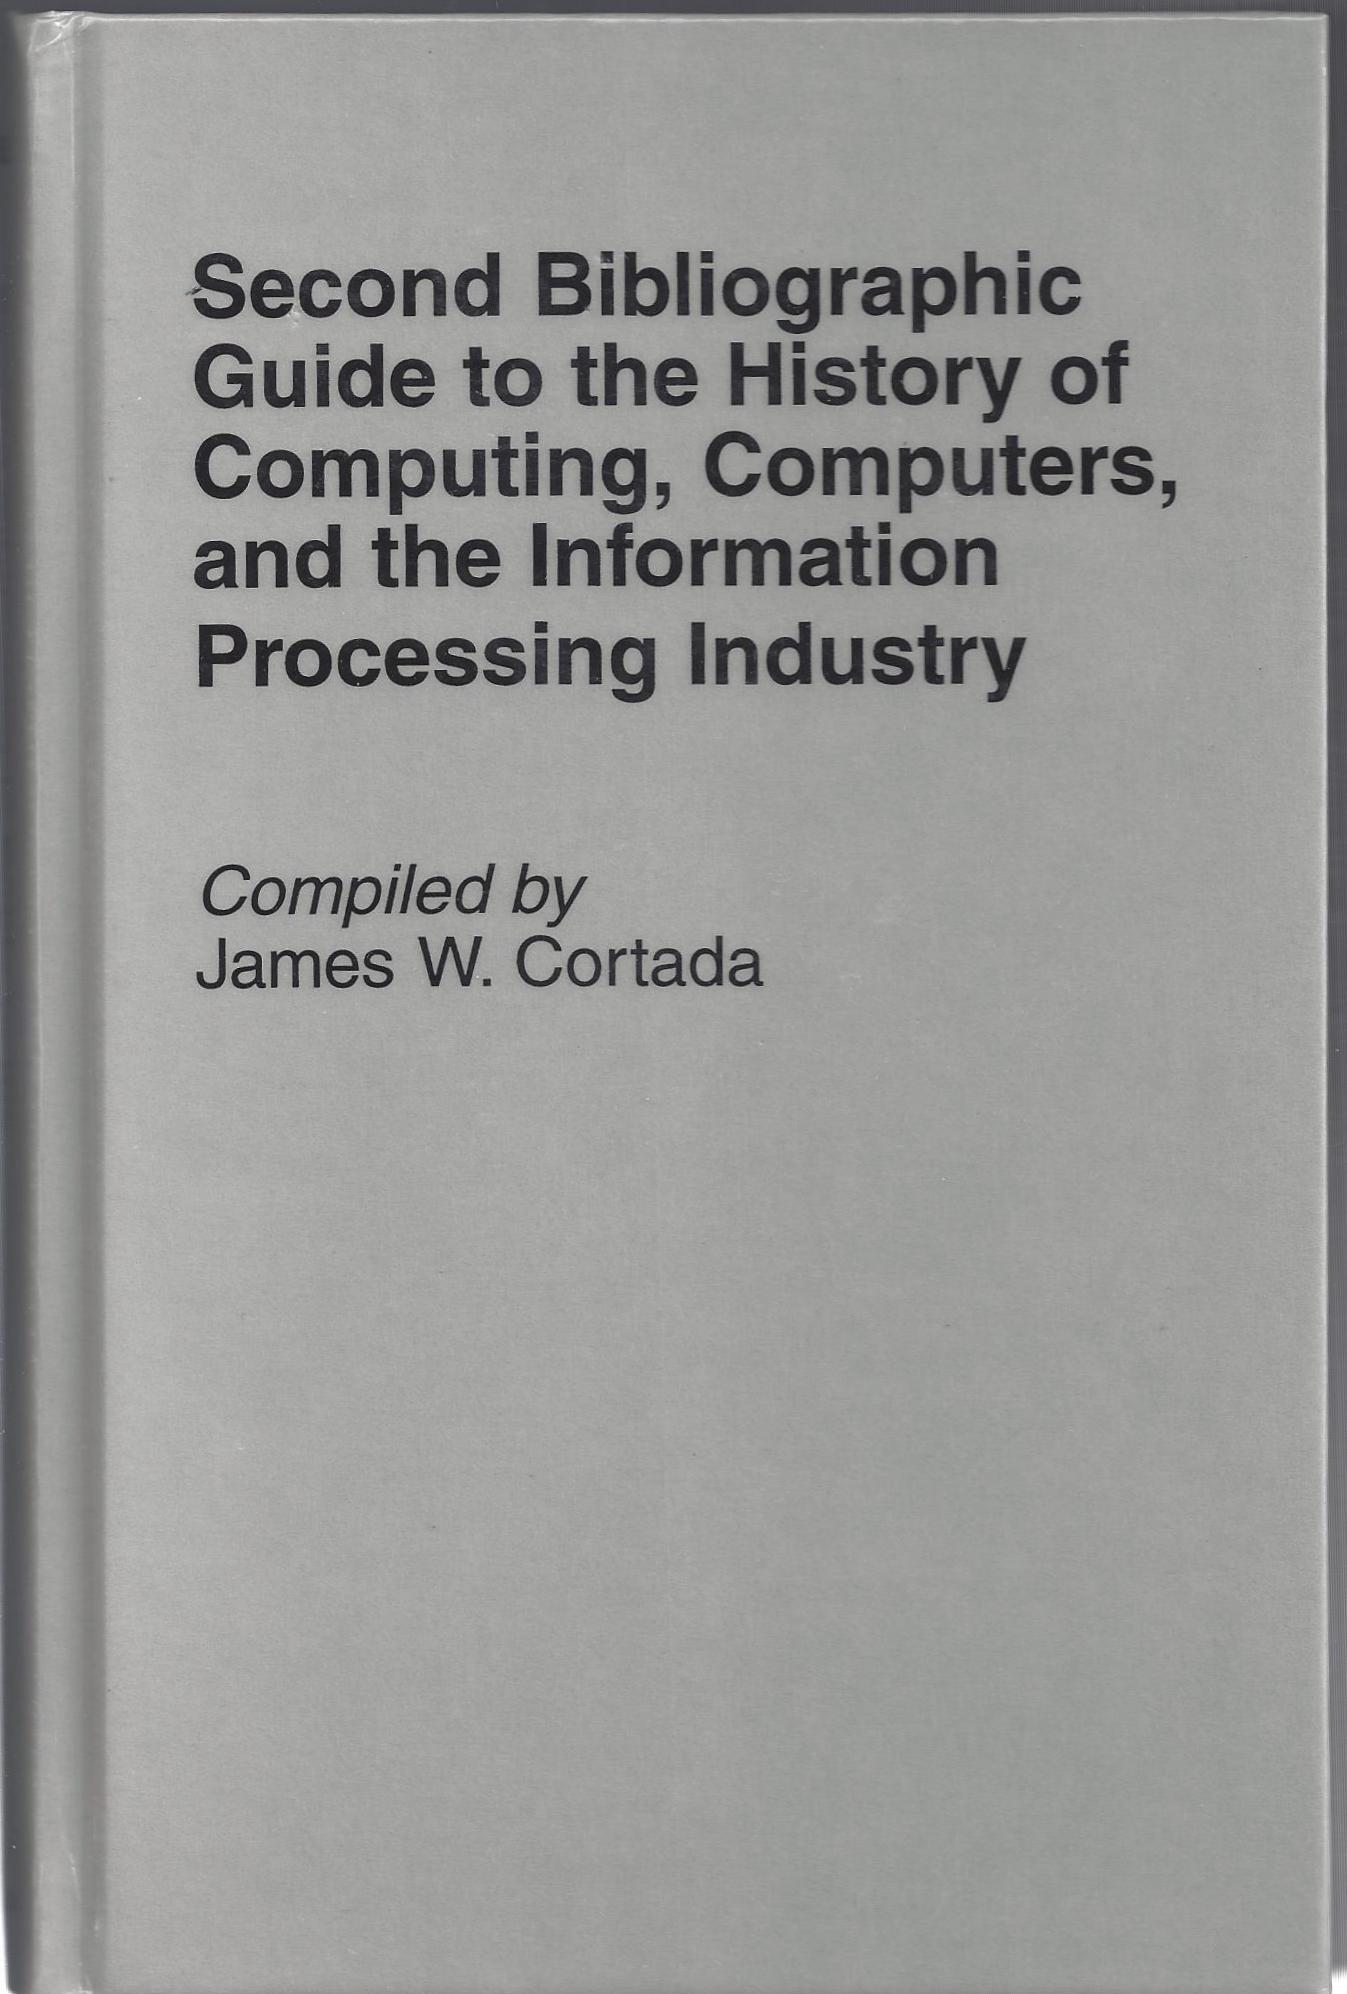 Second Bibliographic Guide to the History of Computing, Computers, and the Information Processing Industry. James W. Cortada.